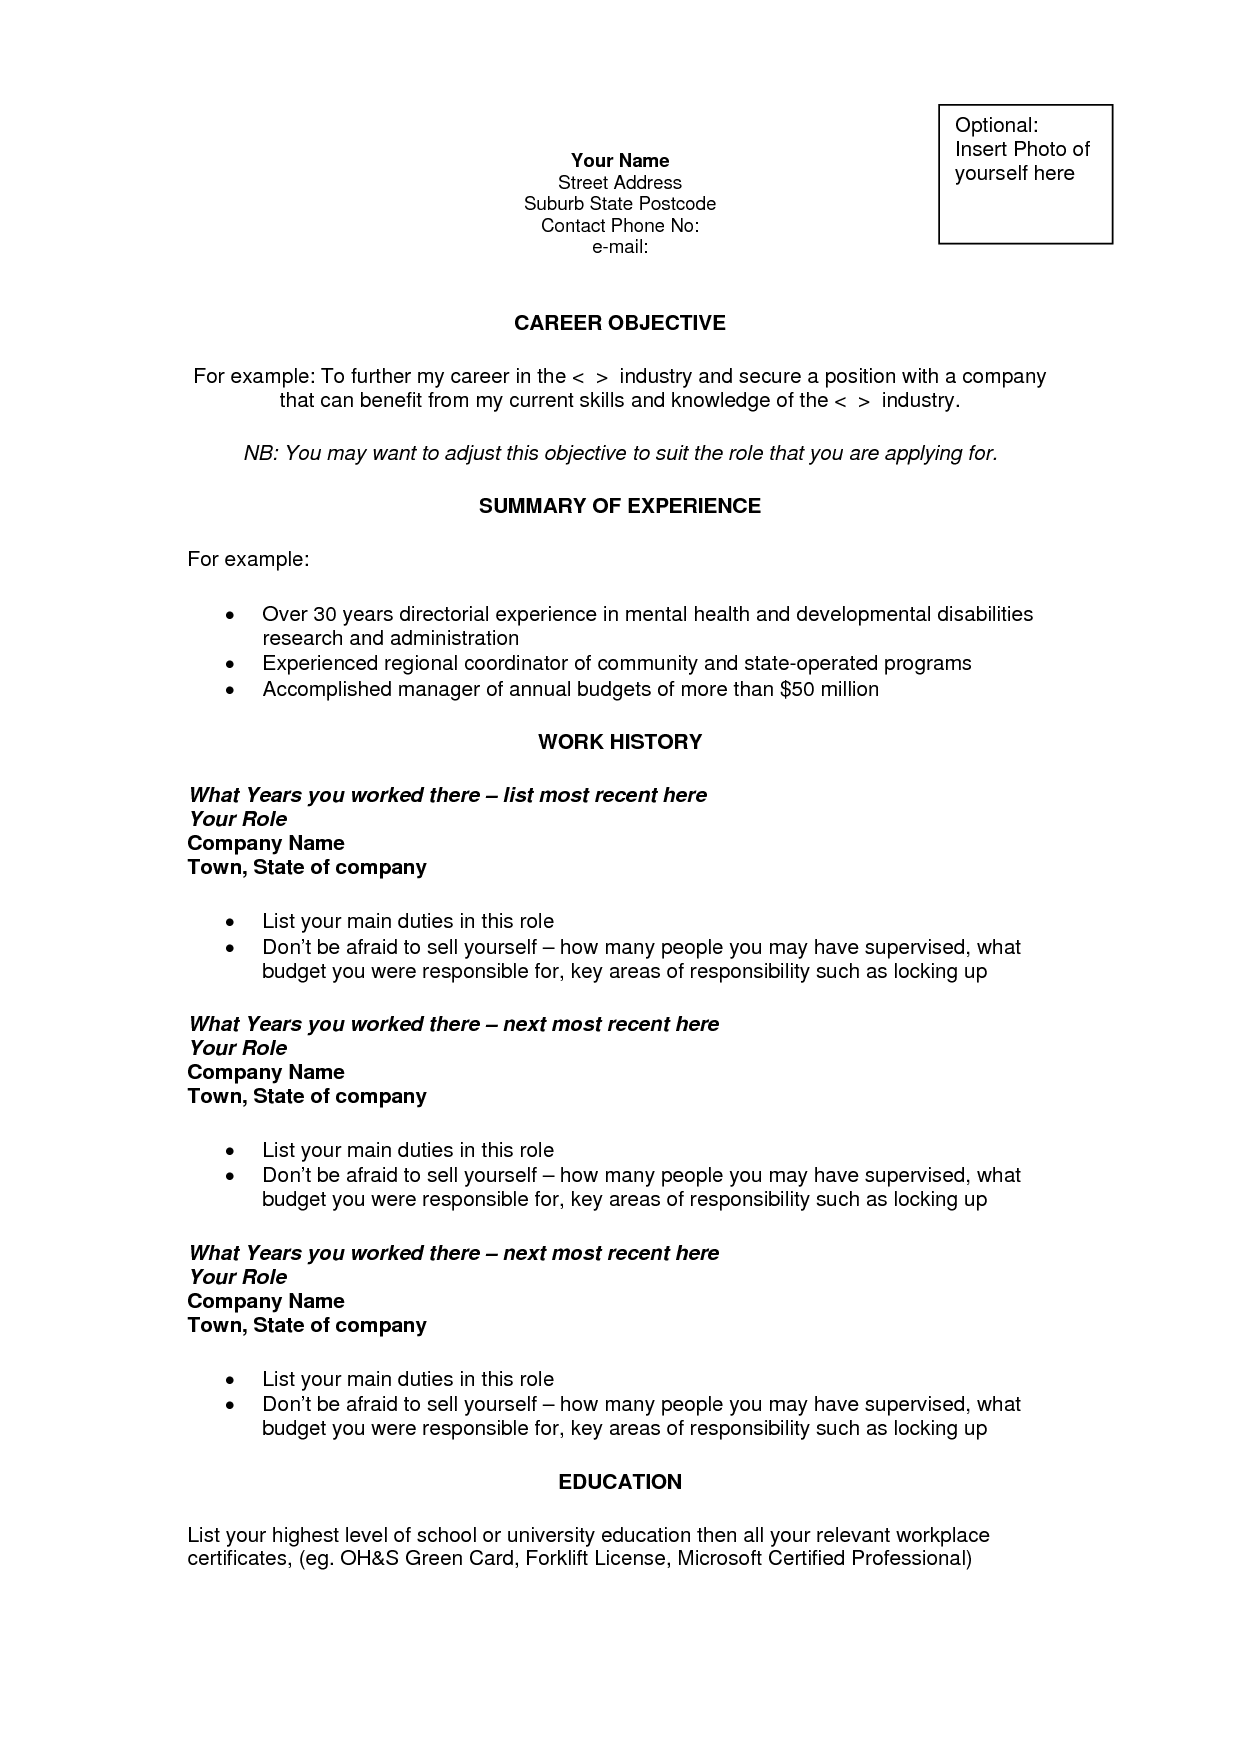 Resume Objective Career Change Good Objective Statements for a Resume